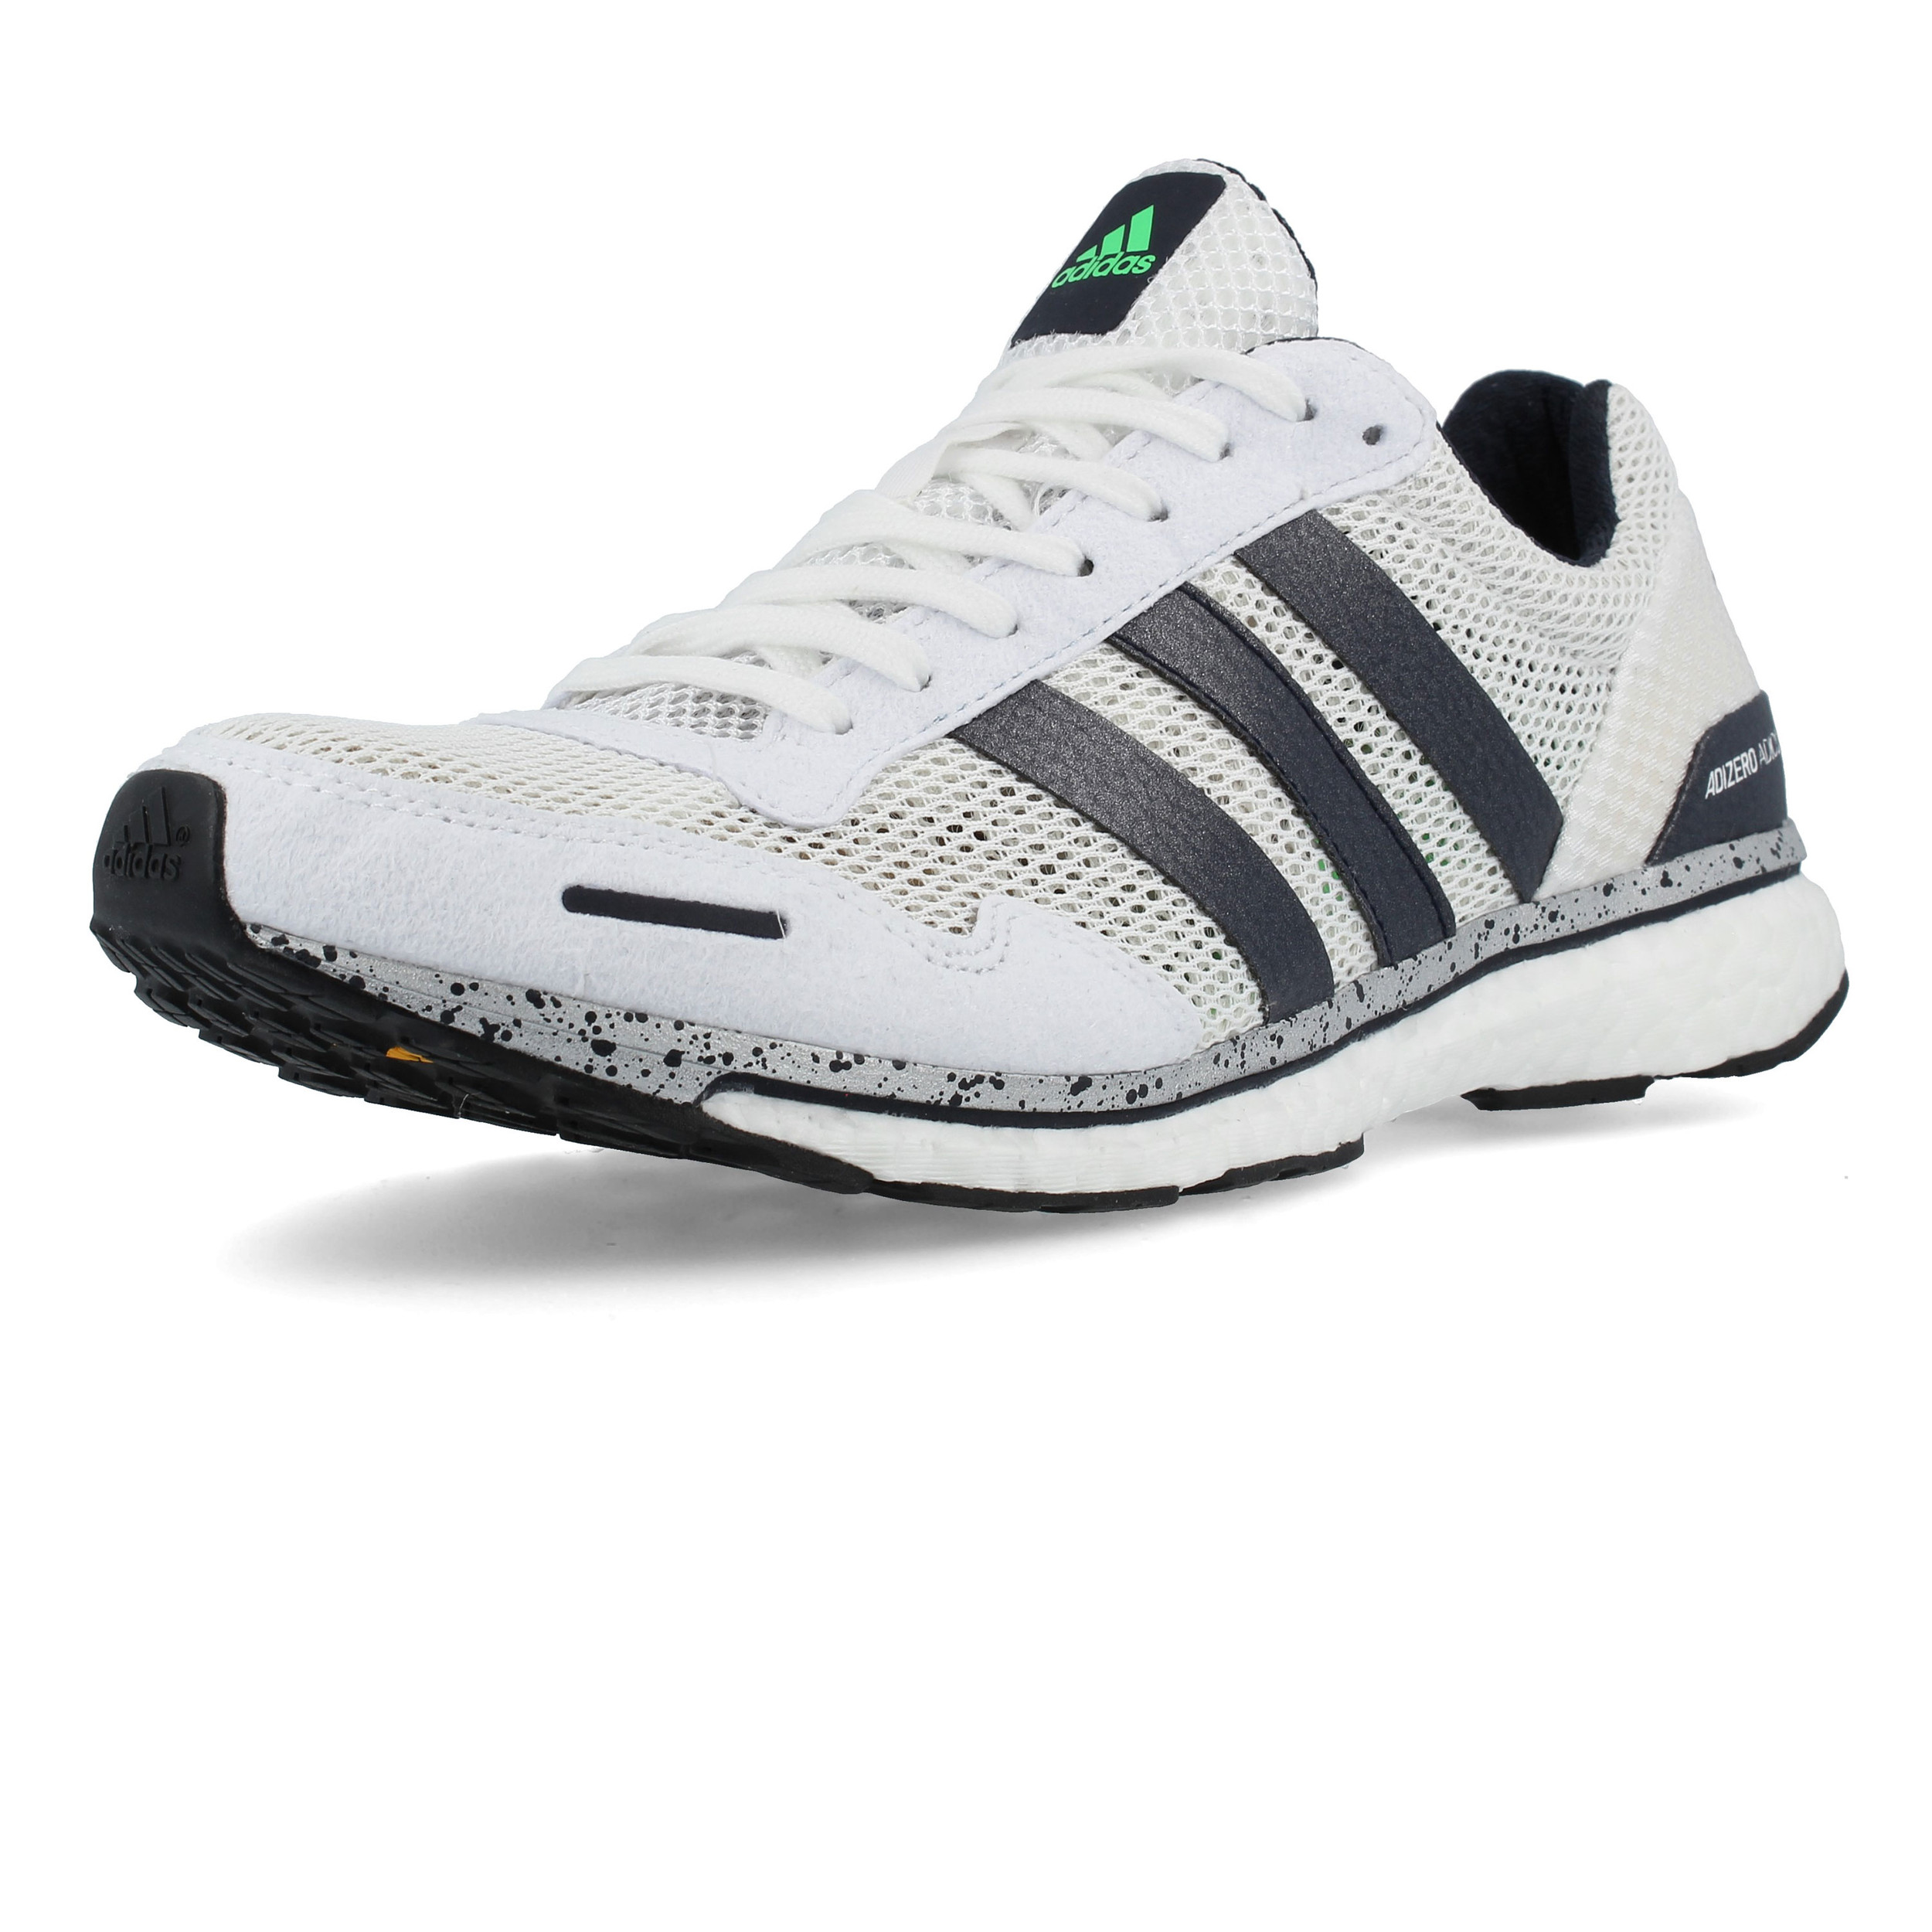 online store 59248 16d56 adidas Mens Adizero Adios 3 Running Shoes Trainers Sneakers White Sports